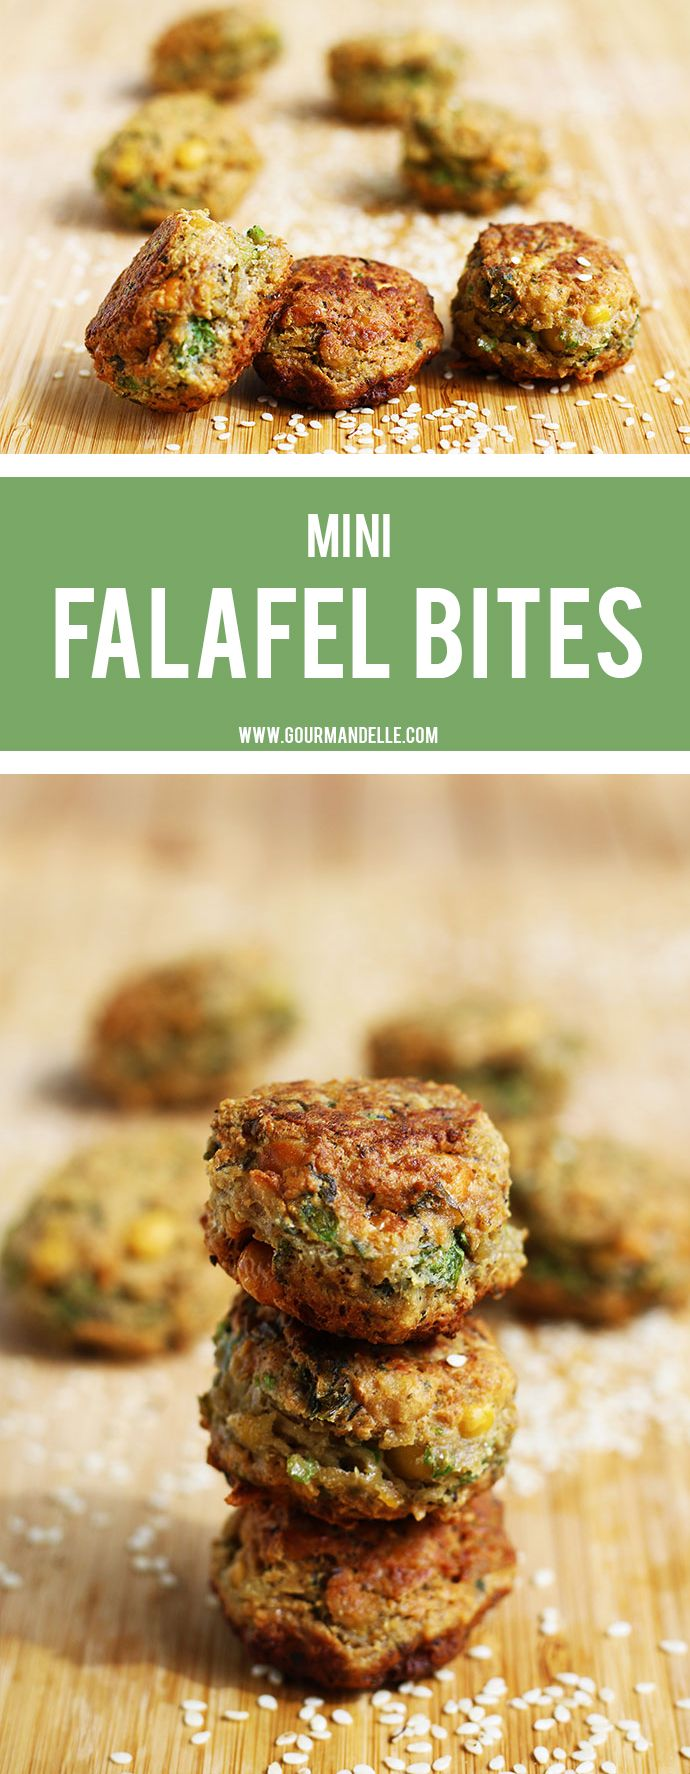 ideas about Falafel Salad Falafels, Salad and